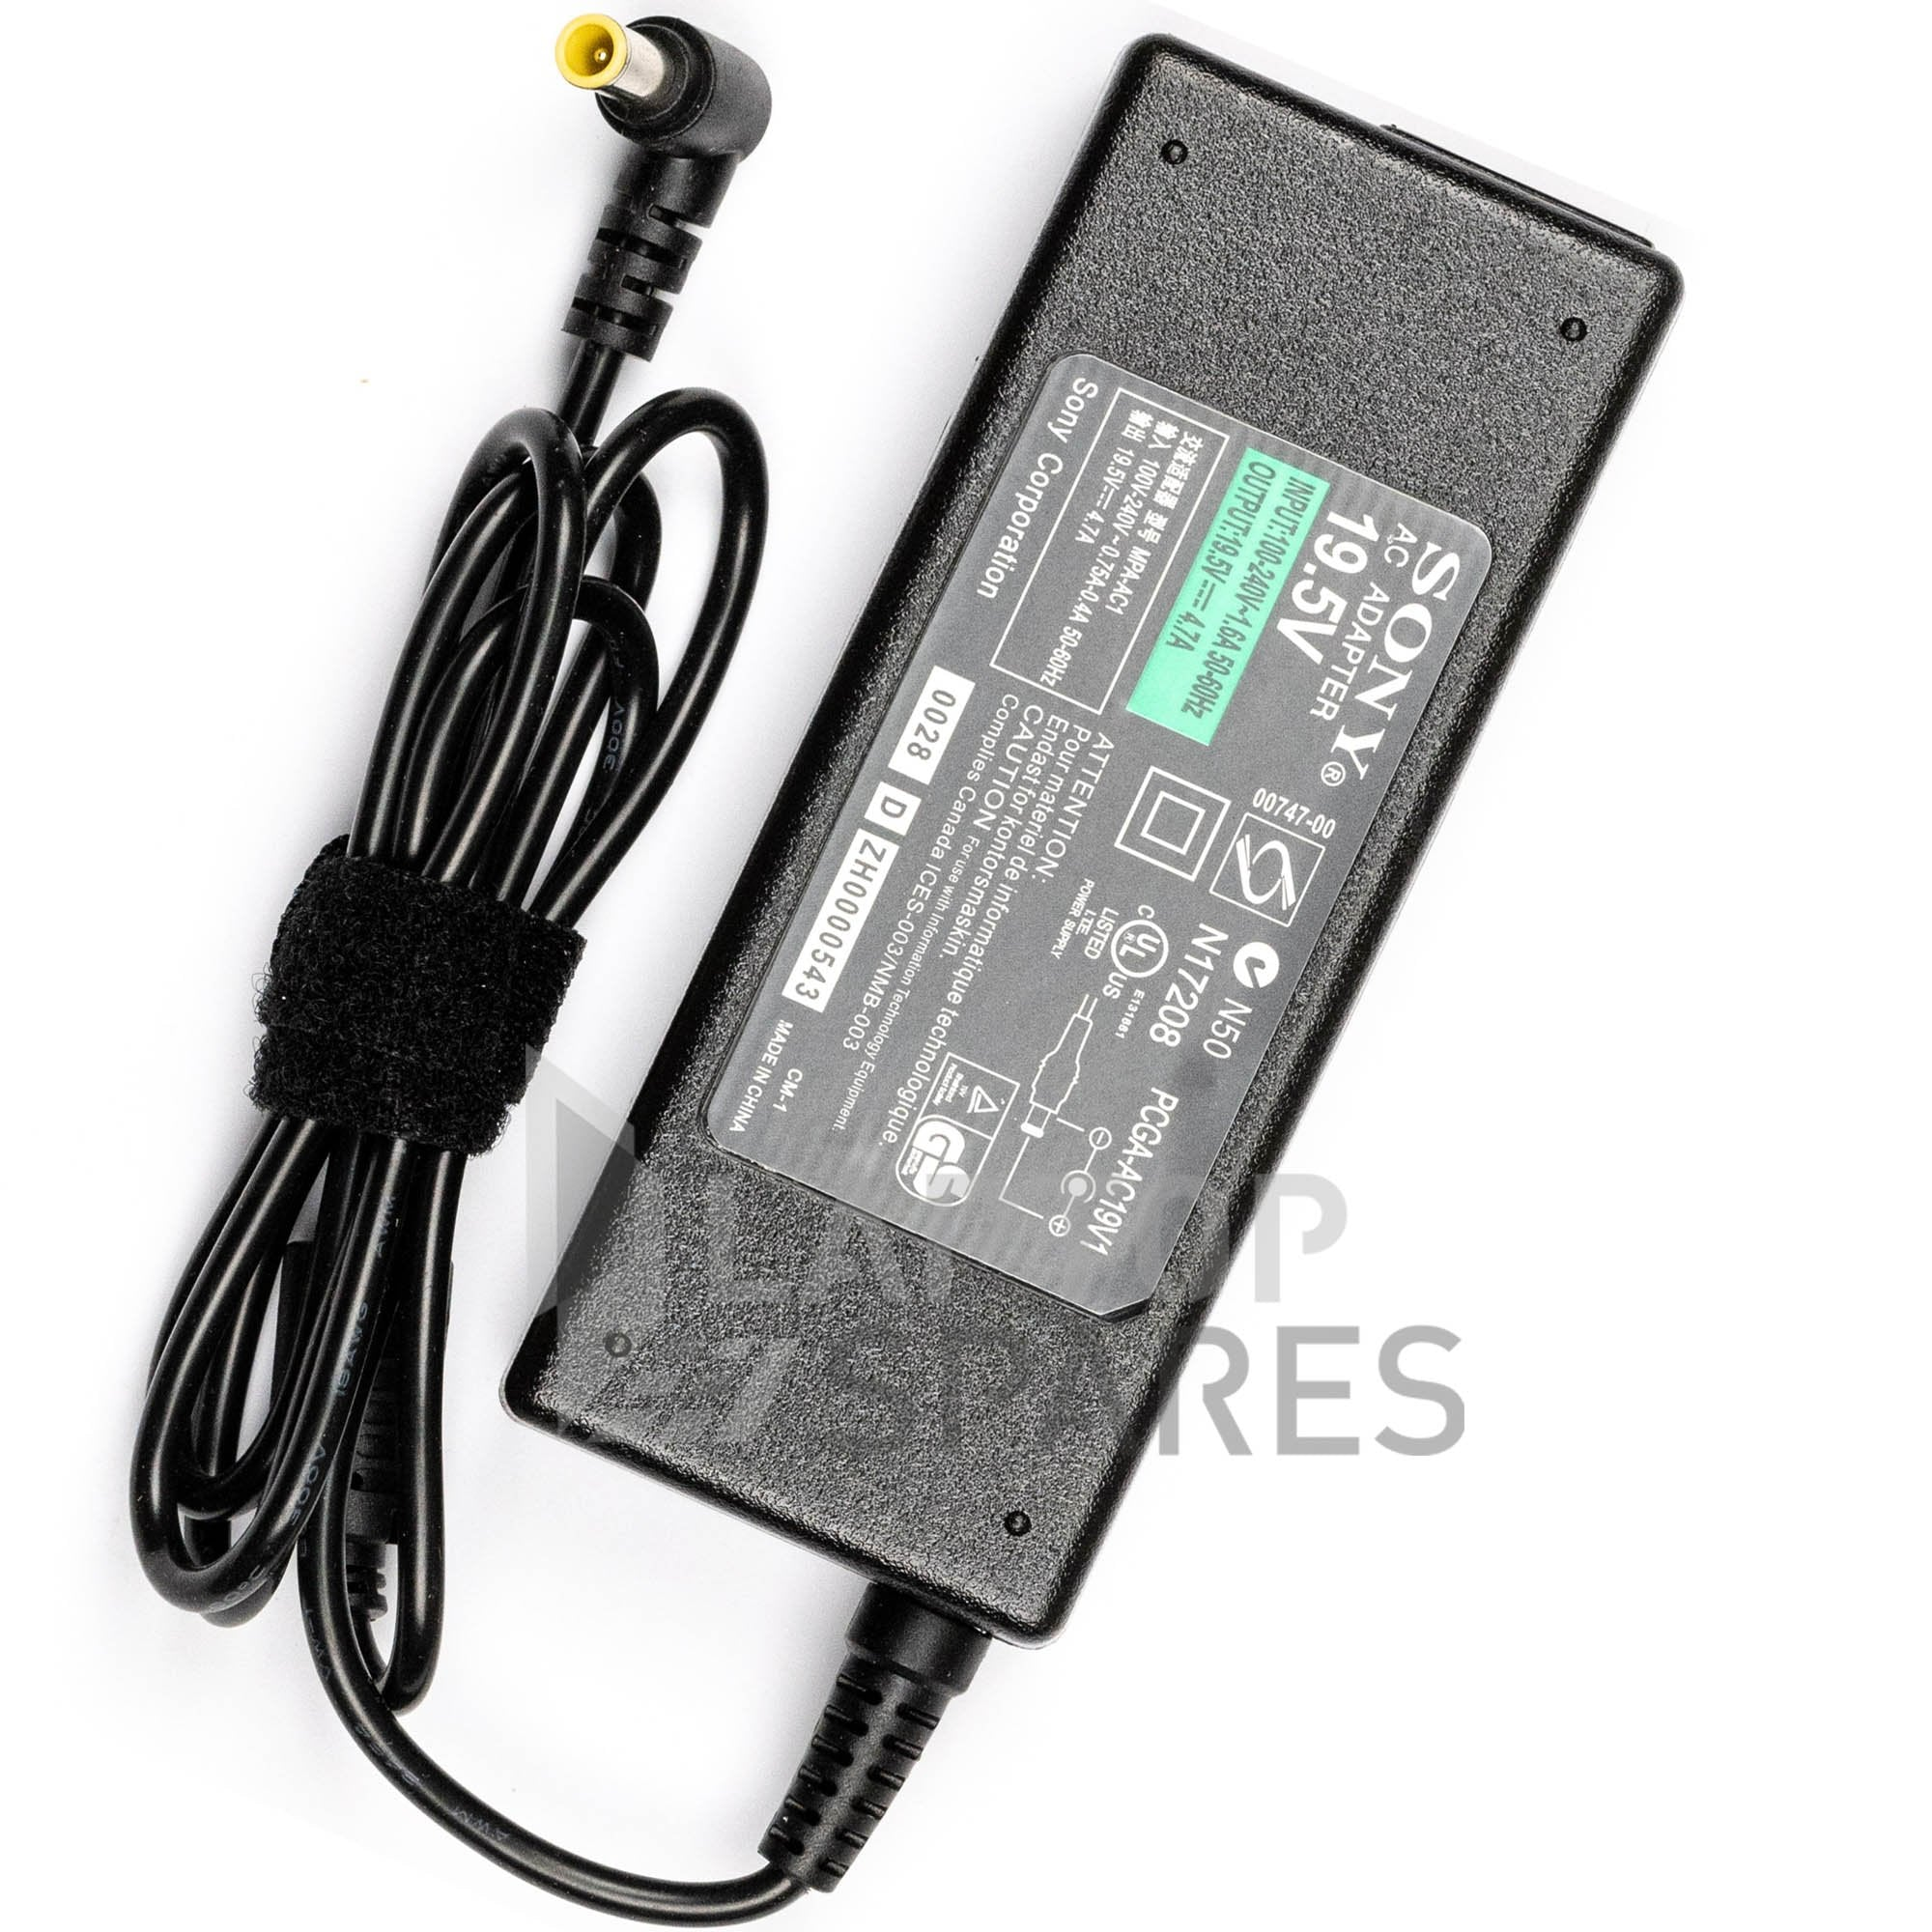 Sony Vaio VPCSB36FG VPCSB36FG/R VPCSB36FN Laptop AC Adapter Charger